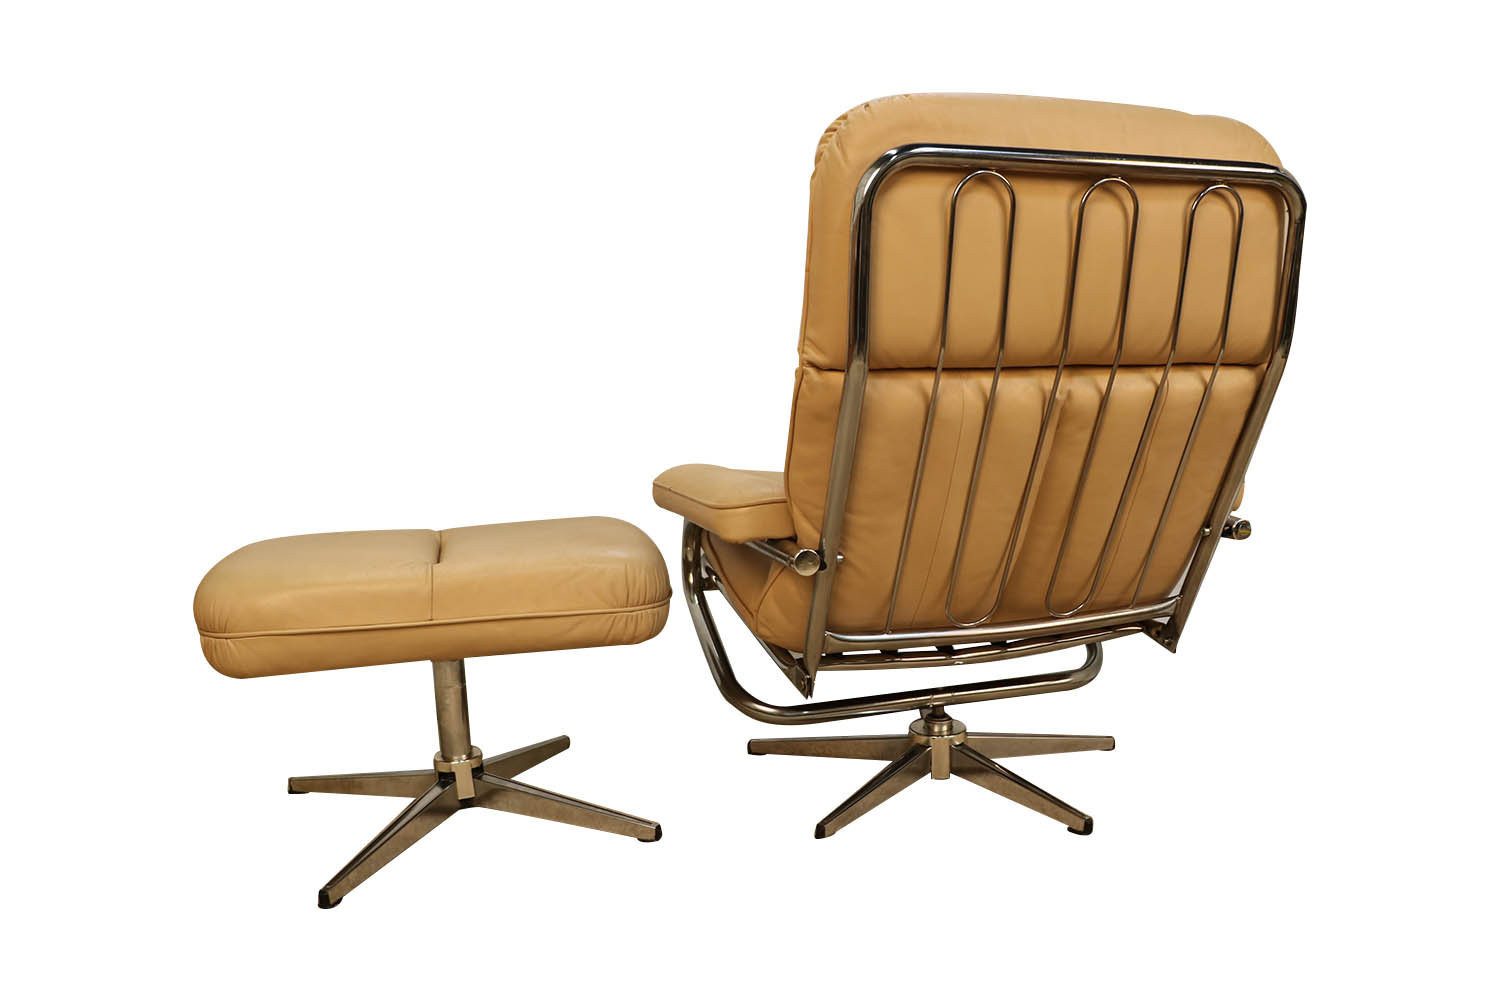 Image of: Mid Century Modern Chrome Leather Recliner Chair And Ottoman Set